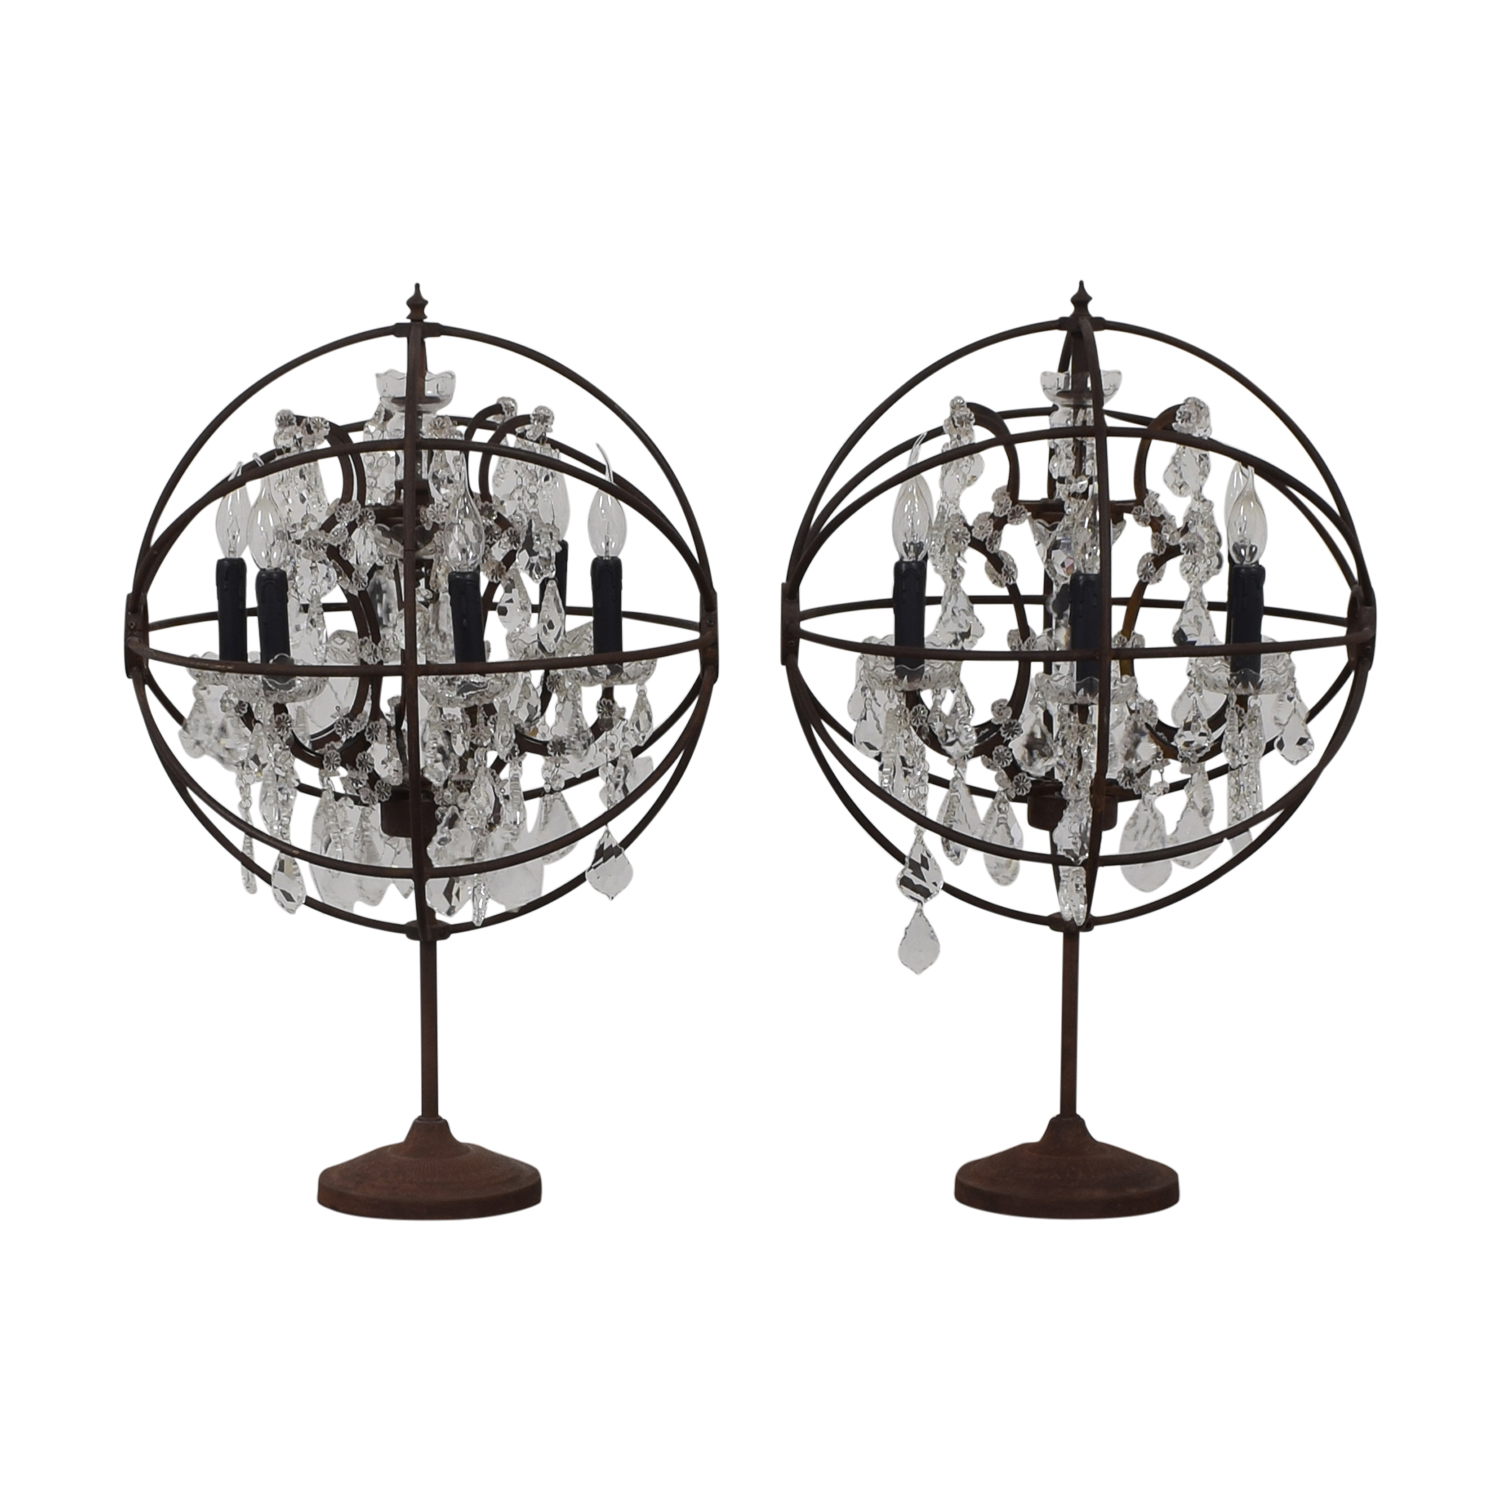 82 off restoration hardware restoration hardware orb crystal table lamps decor